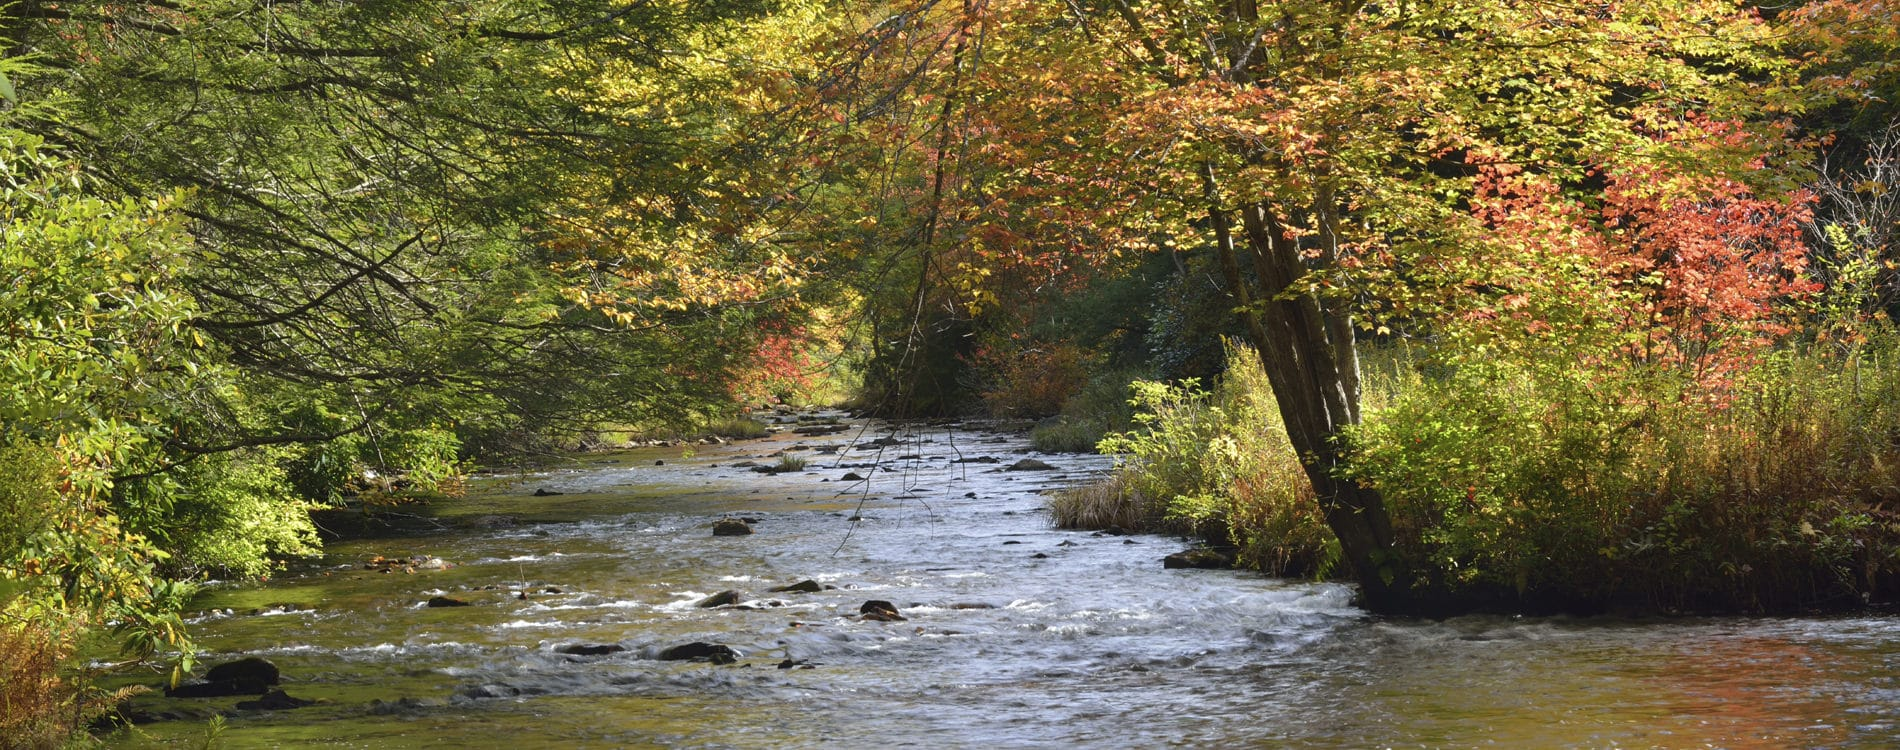 Panther Creek in Hickory Run State Park in the Poconos Pennsylvania